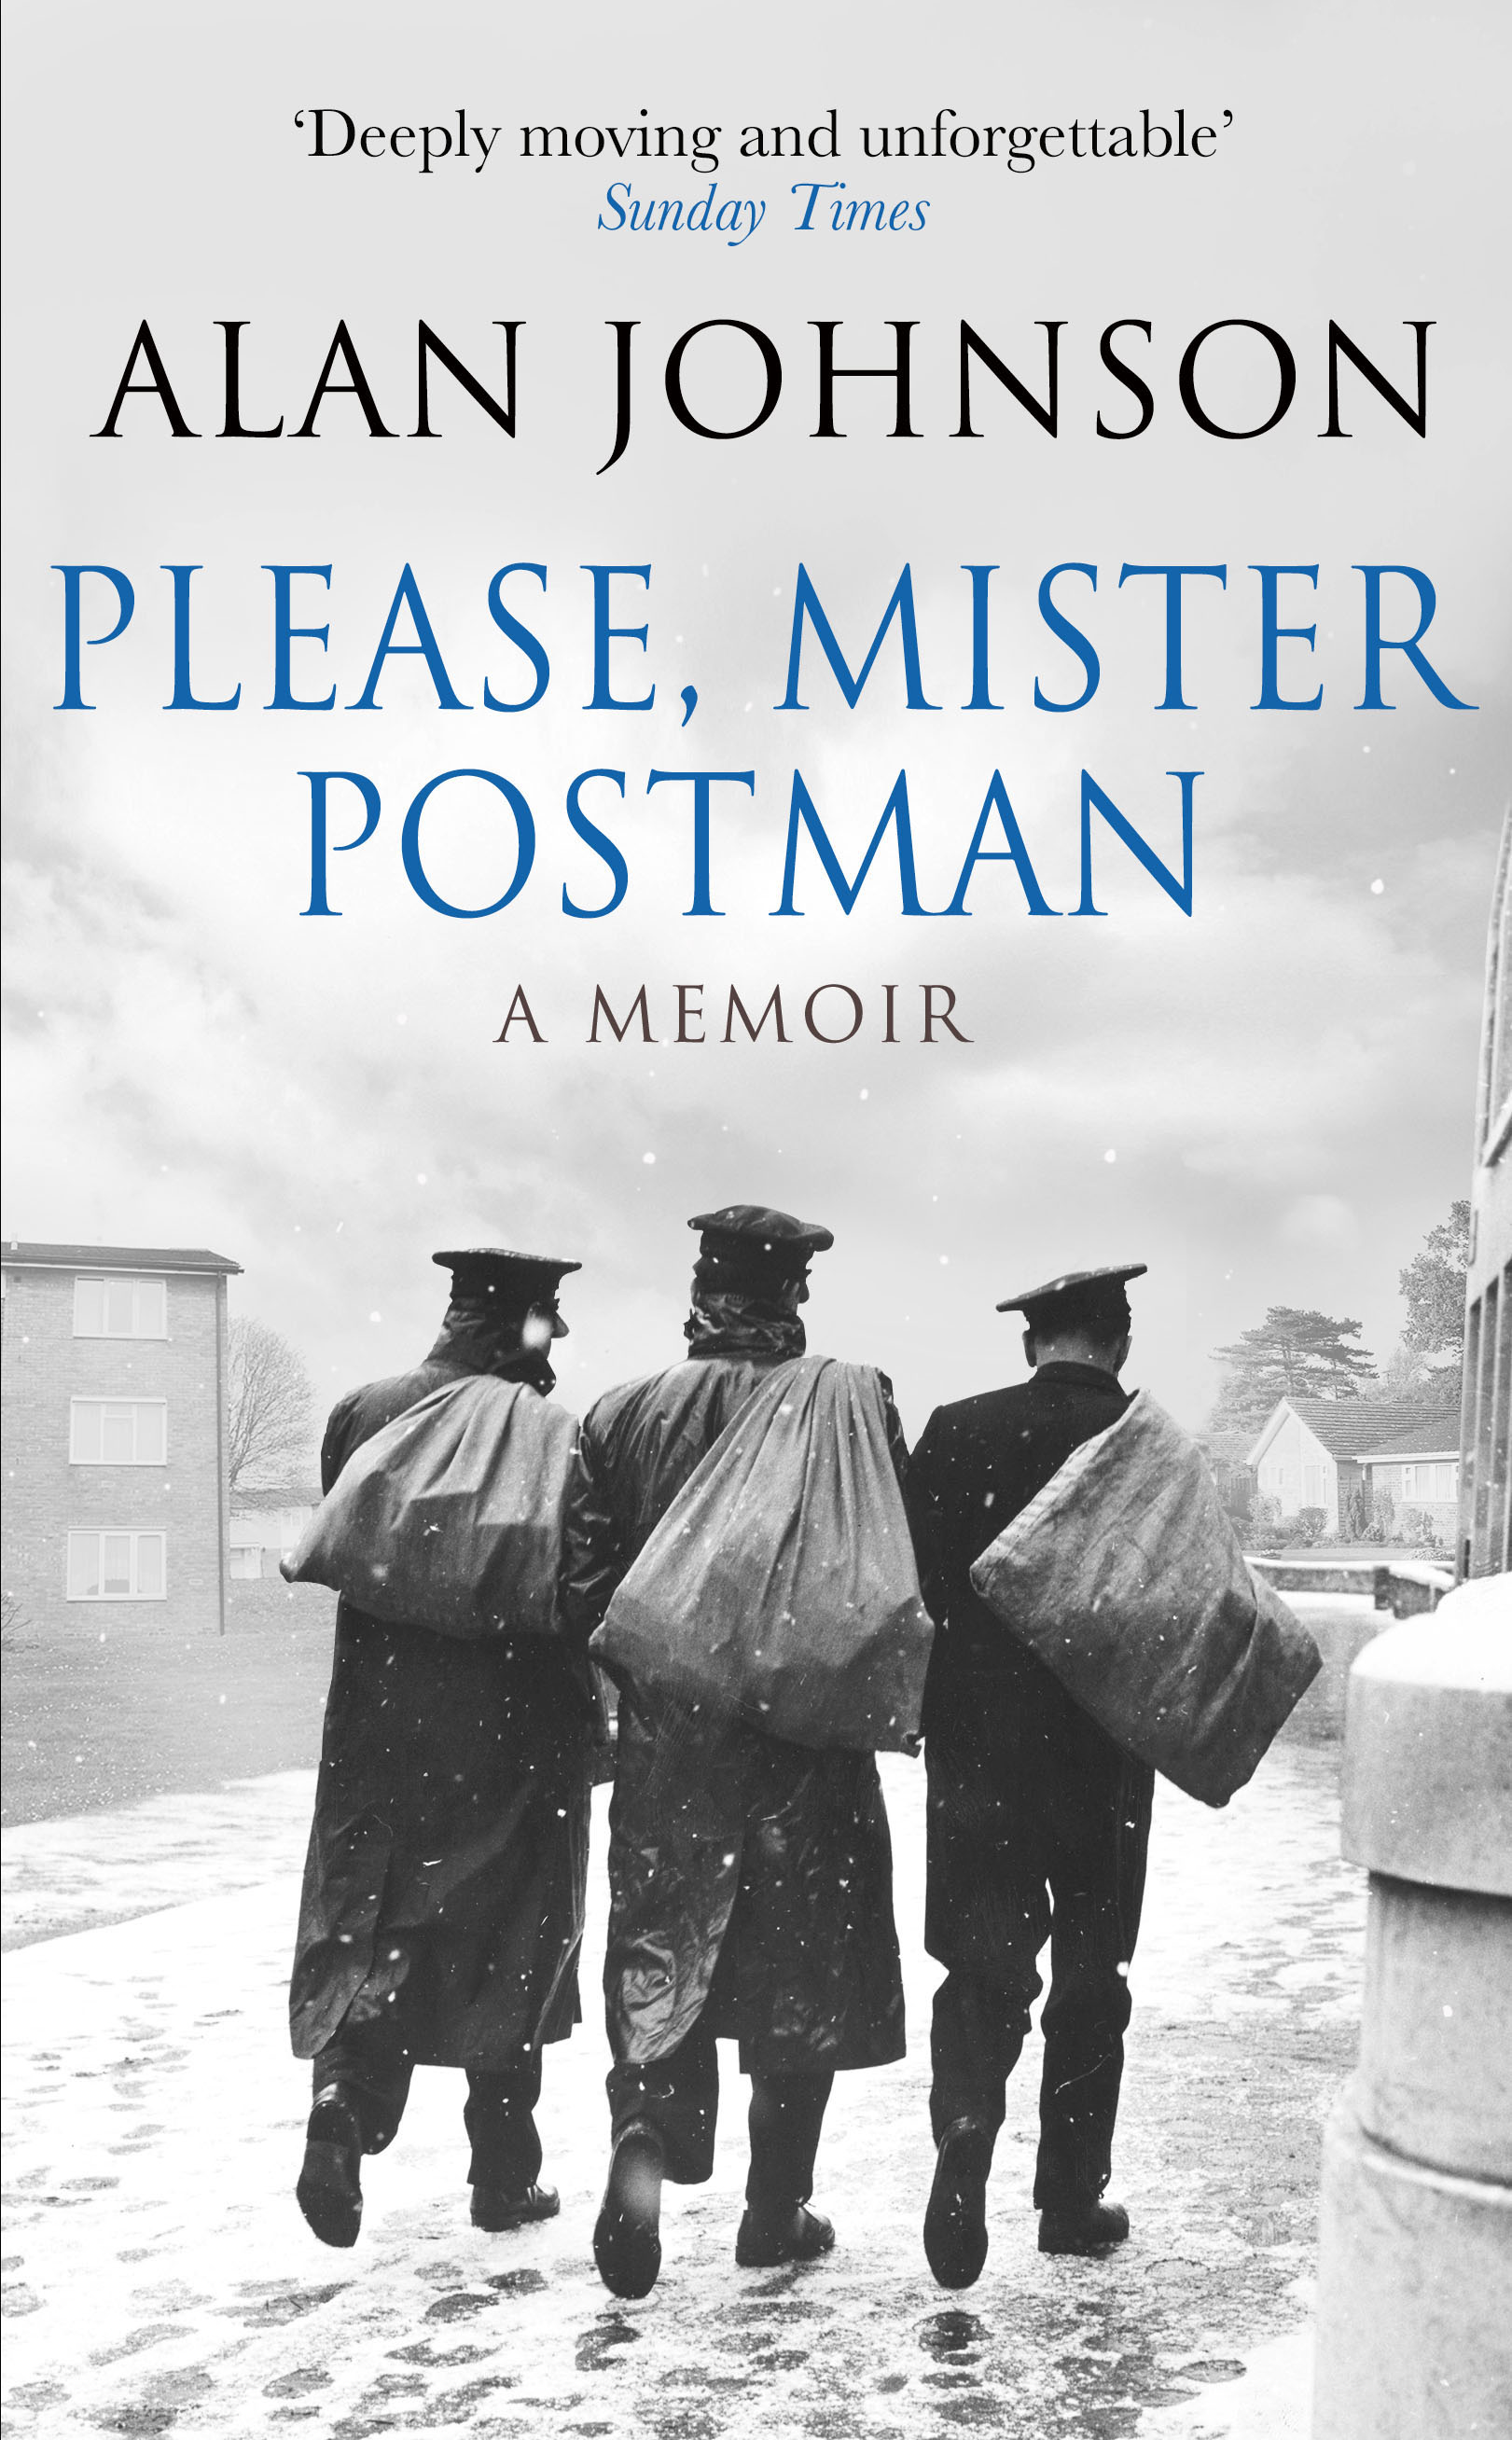 PLEASE MISTER POSTMAN by Alan Joh_HB